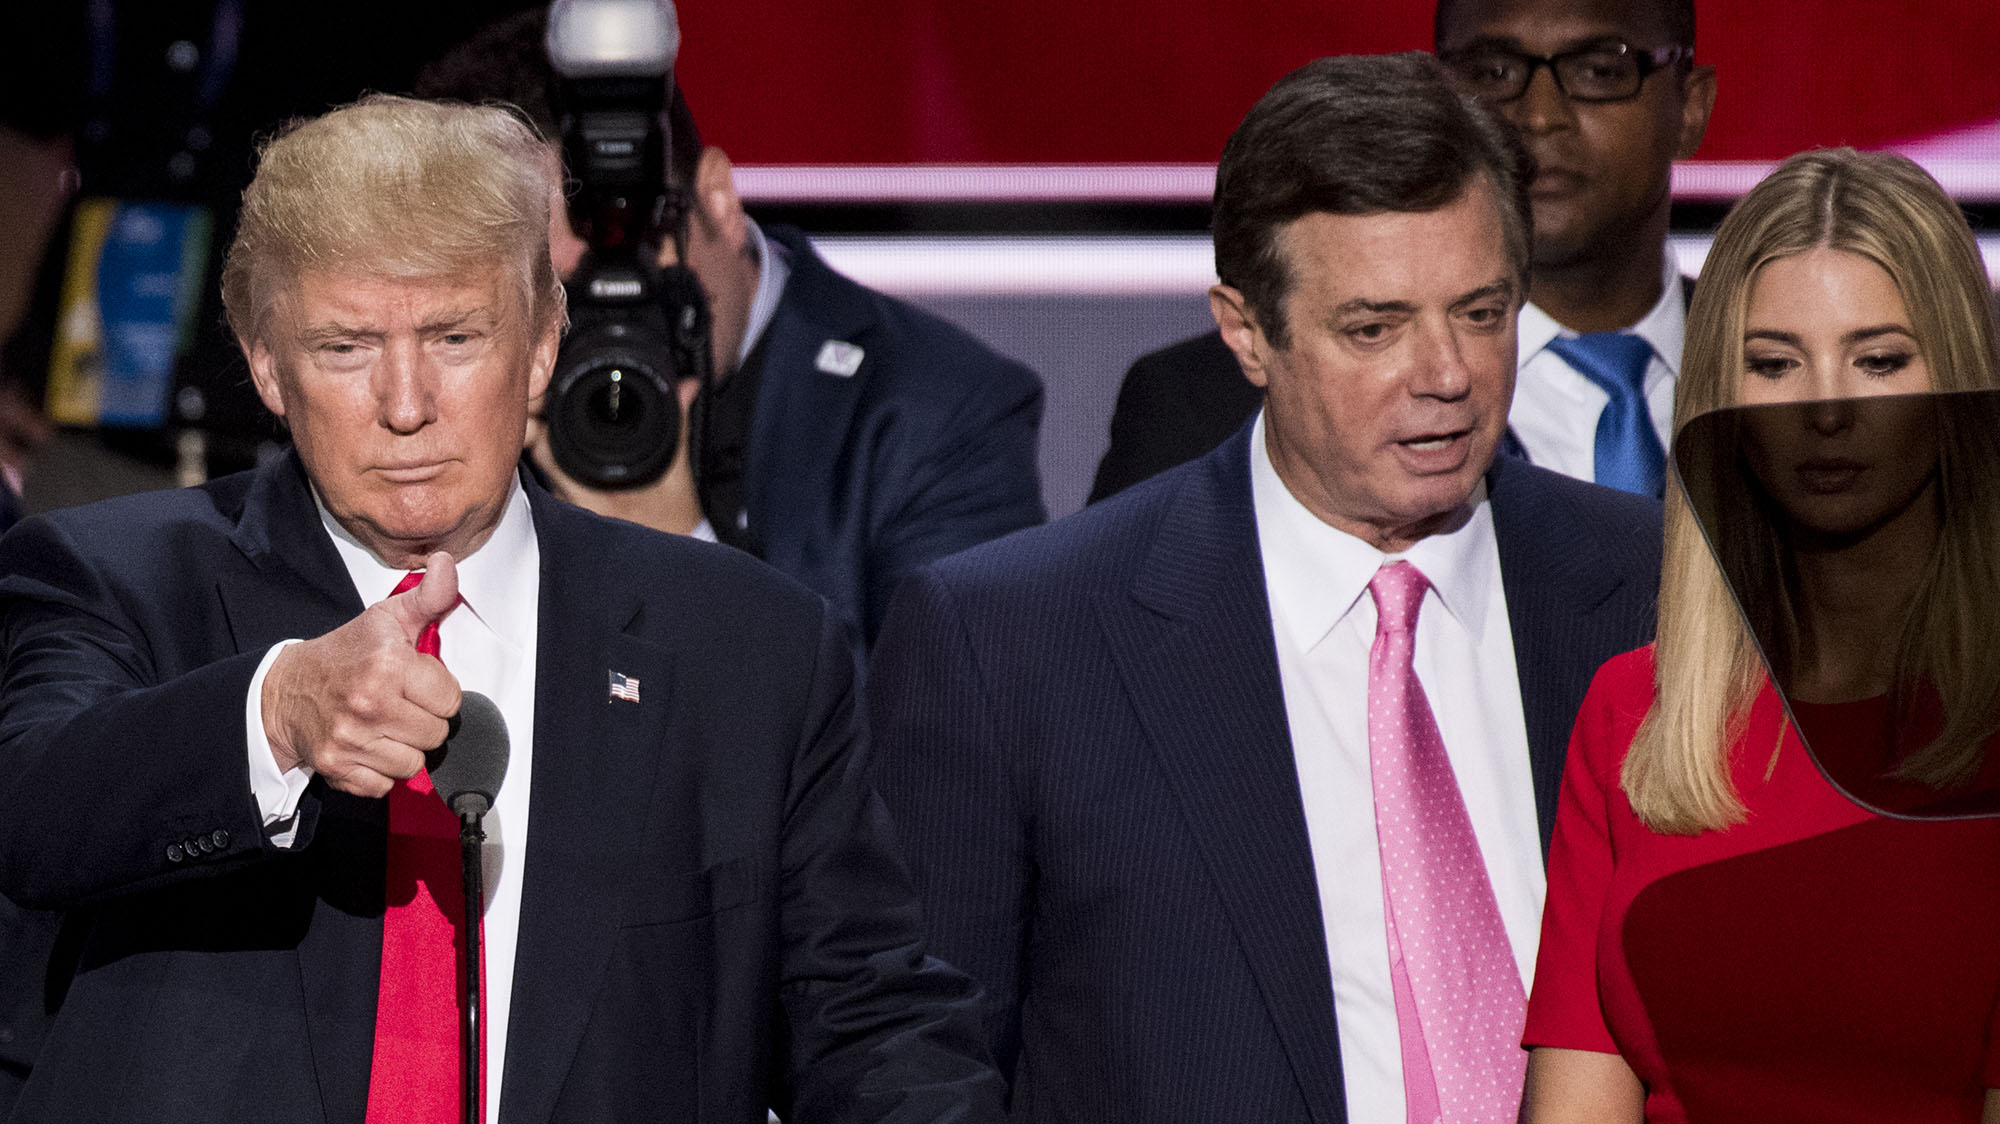 Trump's campaign chairman was reportedly wiretapped. This does not 'vindicate' Trump